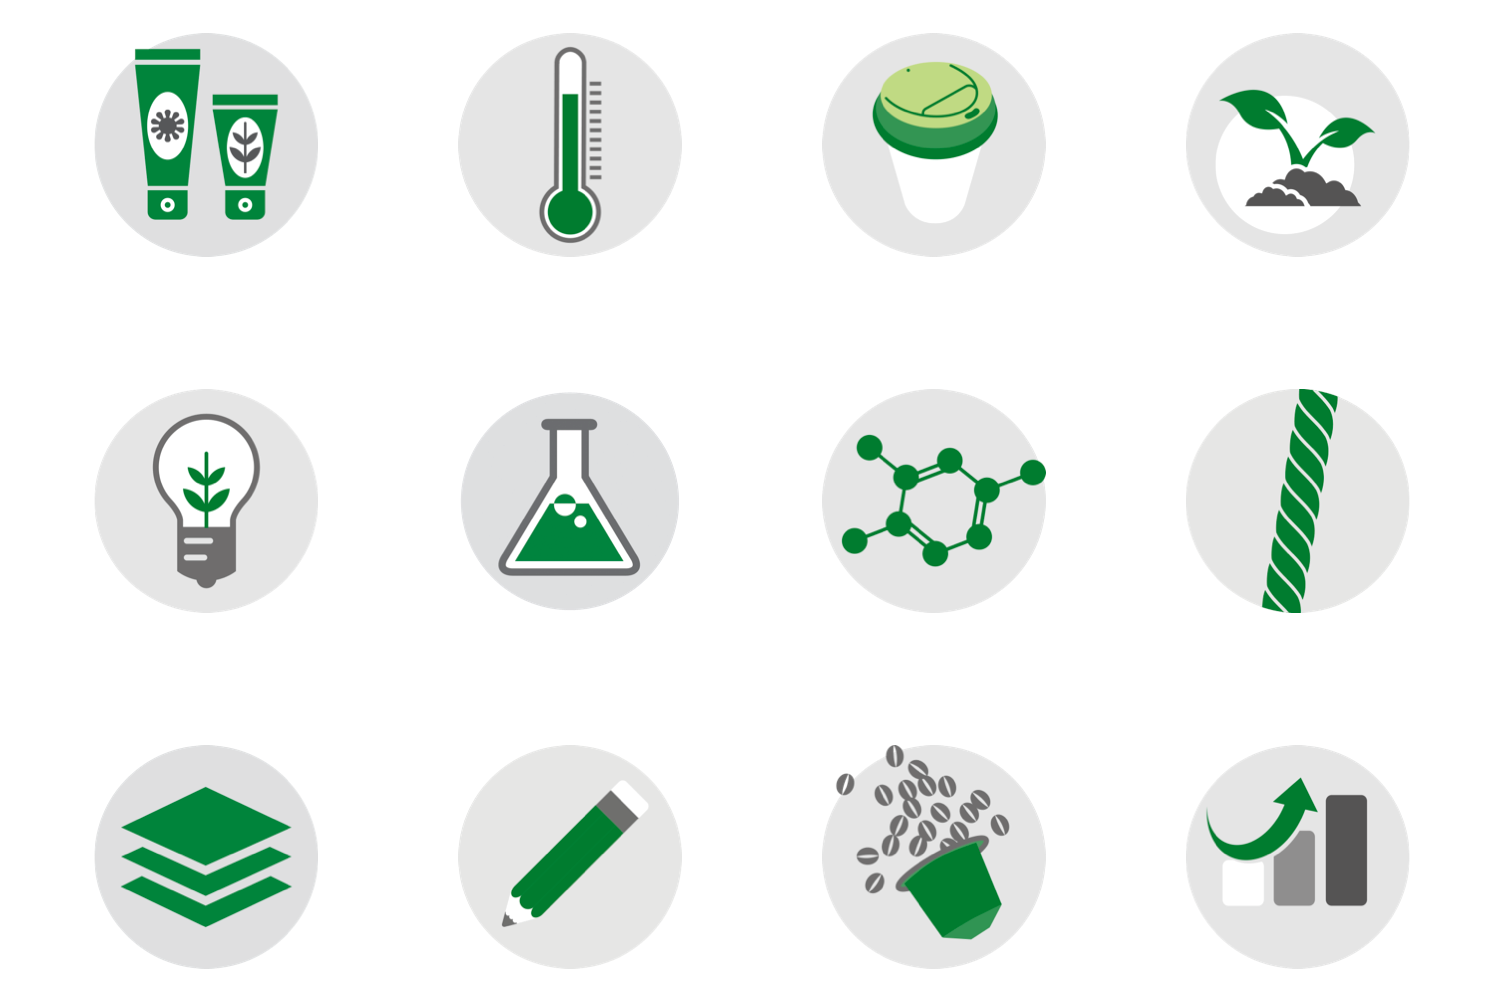 Biome_icons